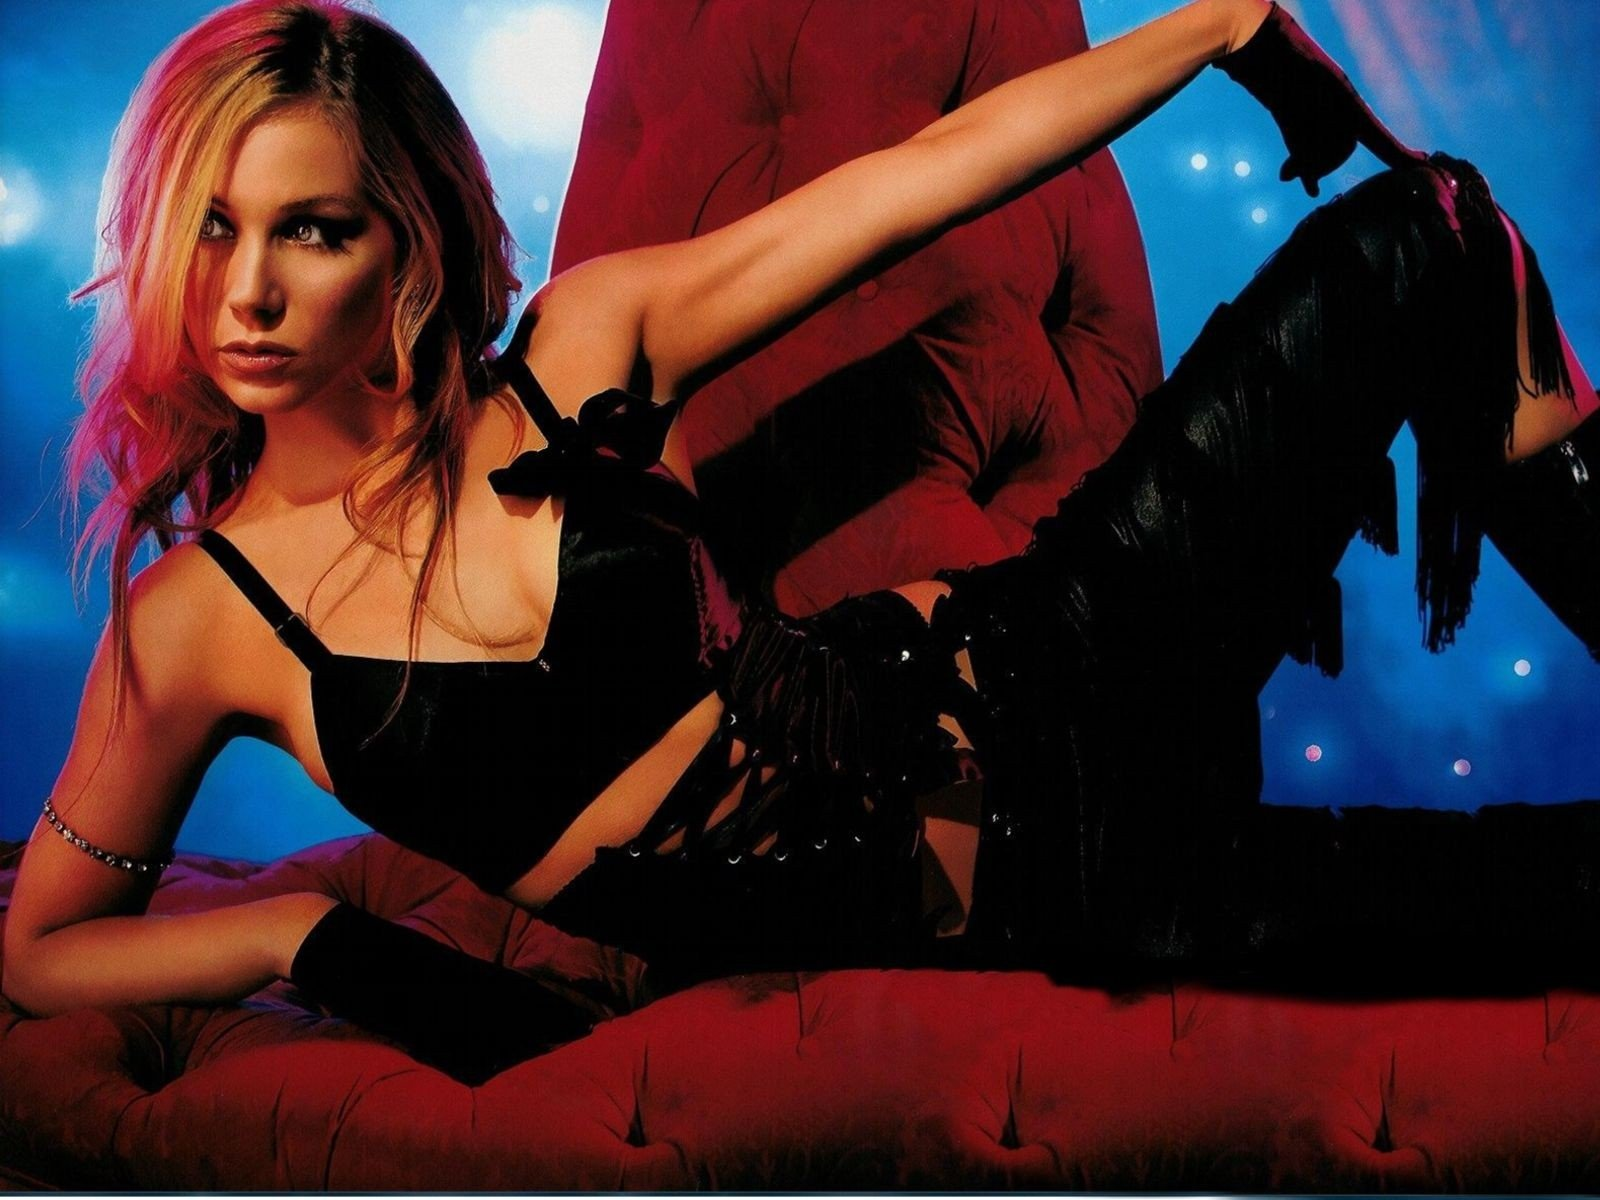 Wallpaper: una posa sexy per Christina Applegate